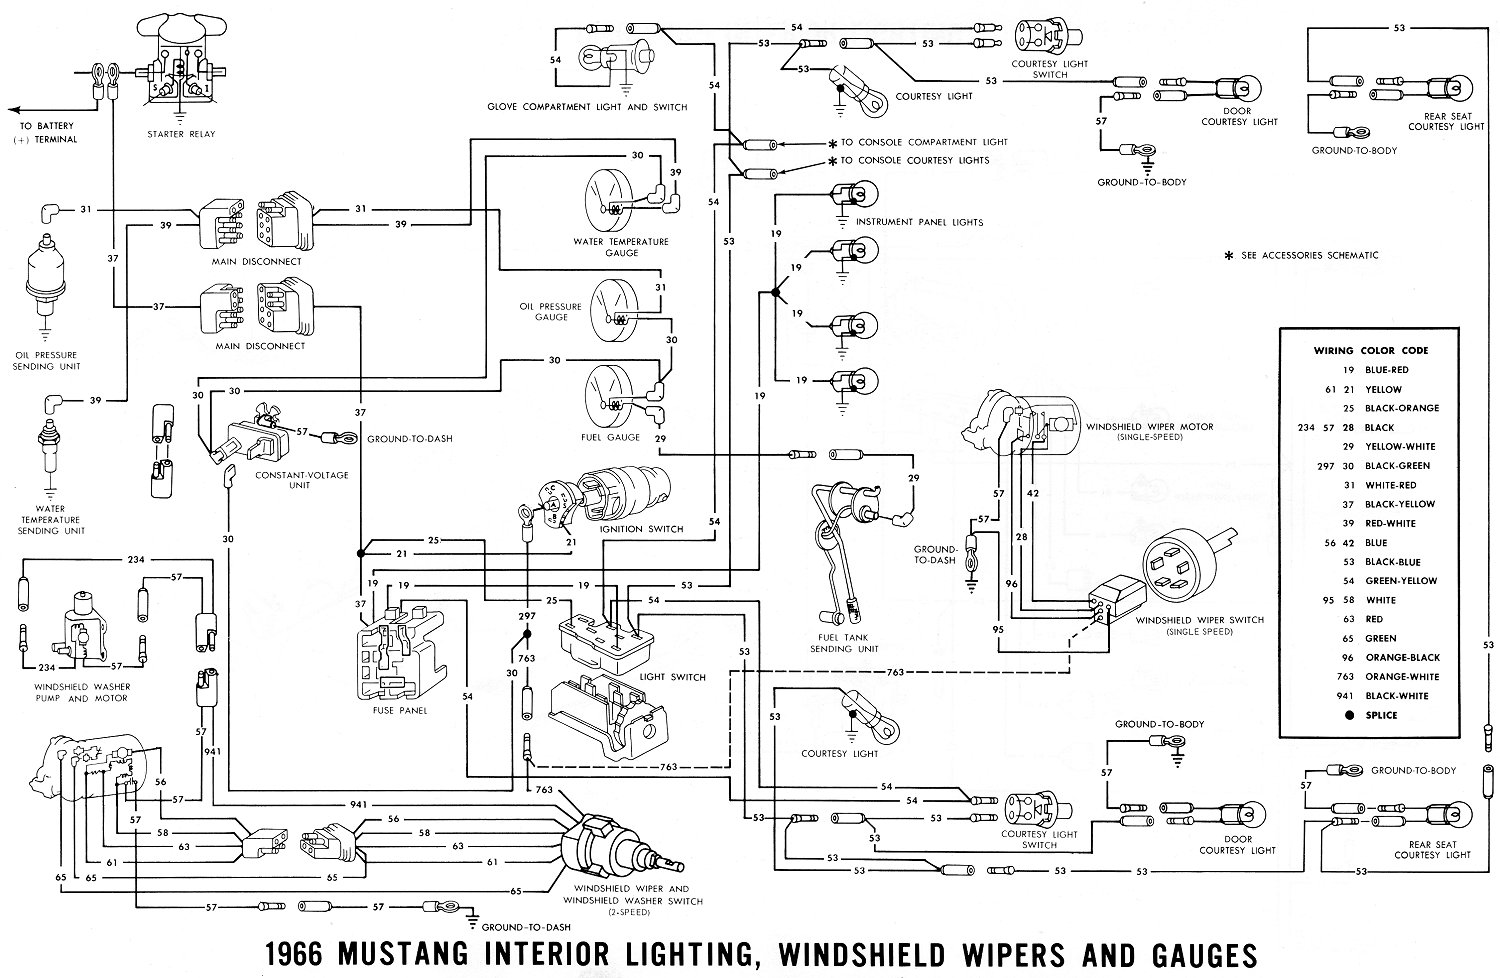 hight resolution of 66 mopar wiper wiring diagram wiring diagram third level66 mopar wiper wiring diagram wiring diagrams img